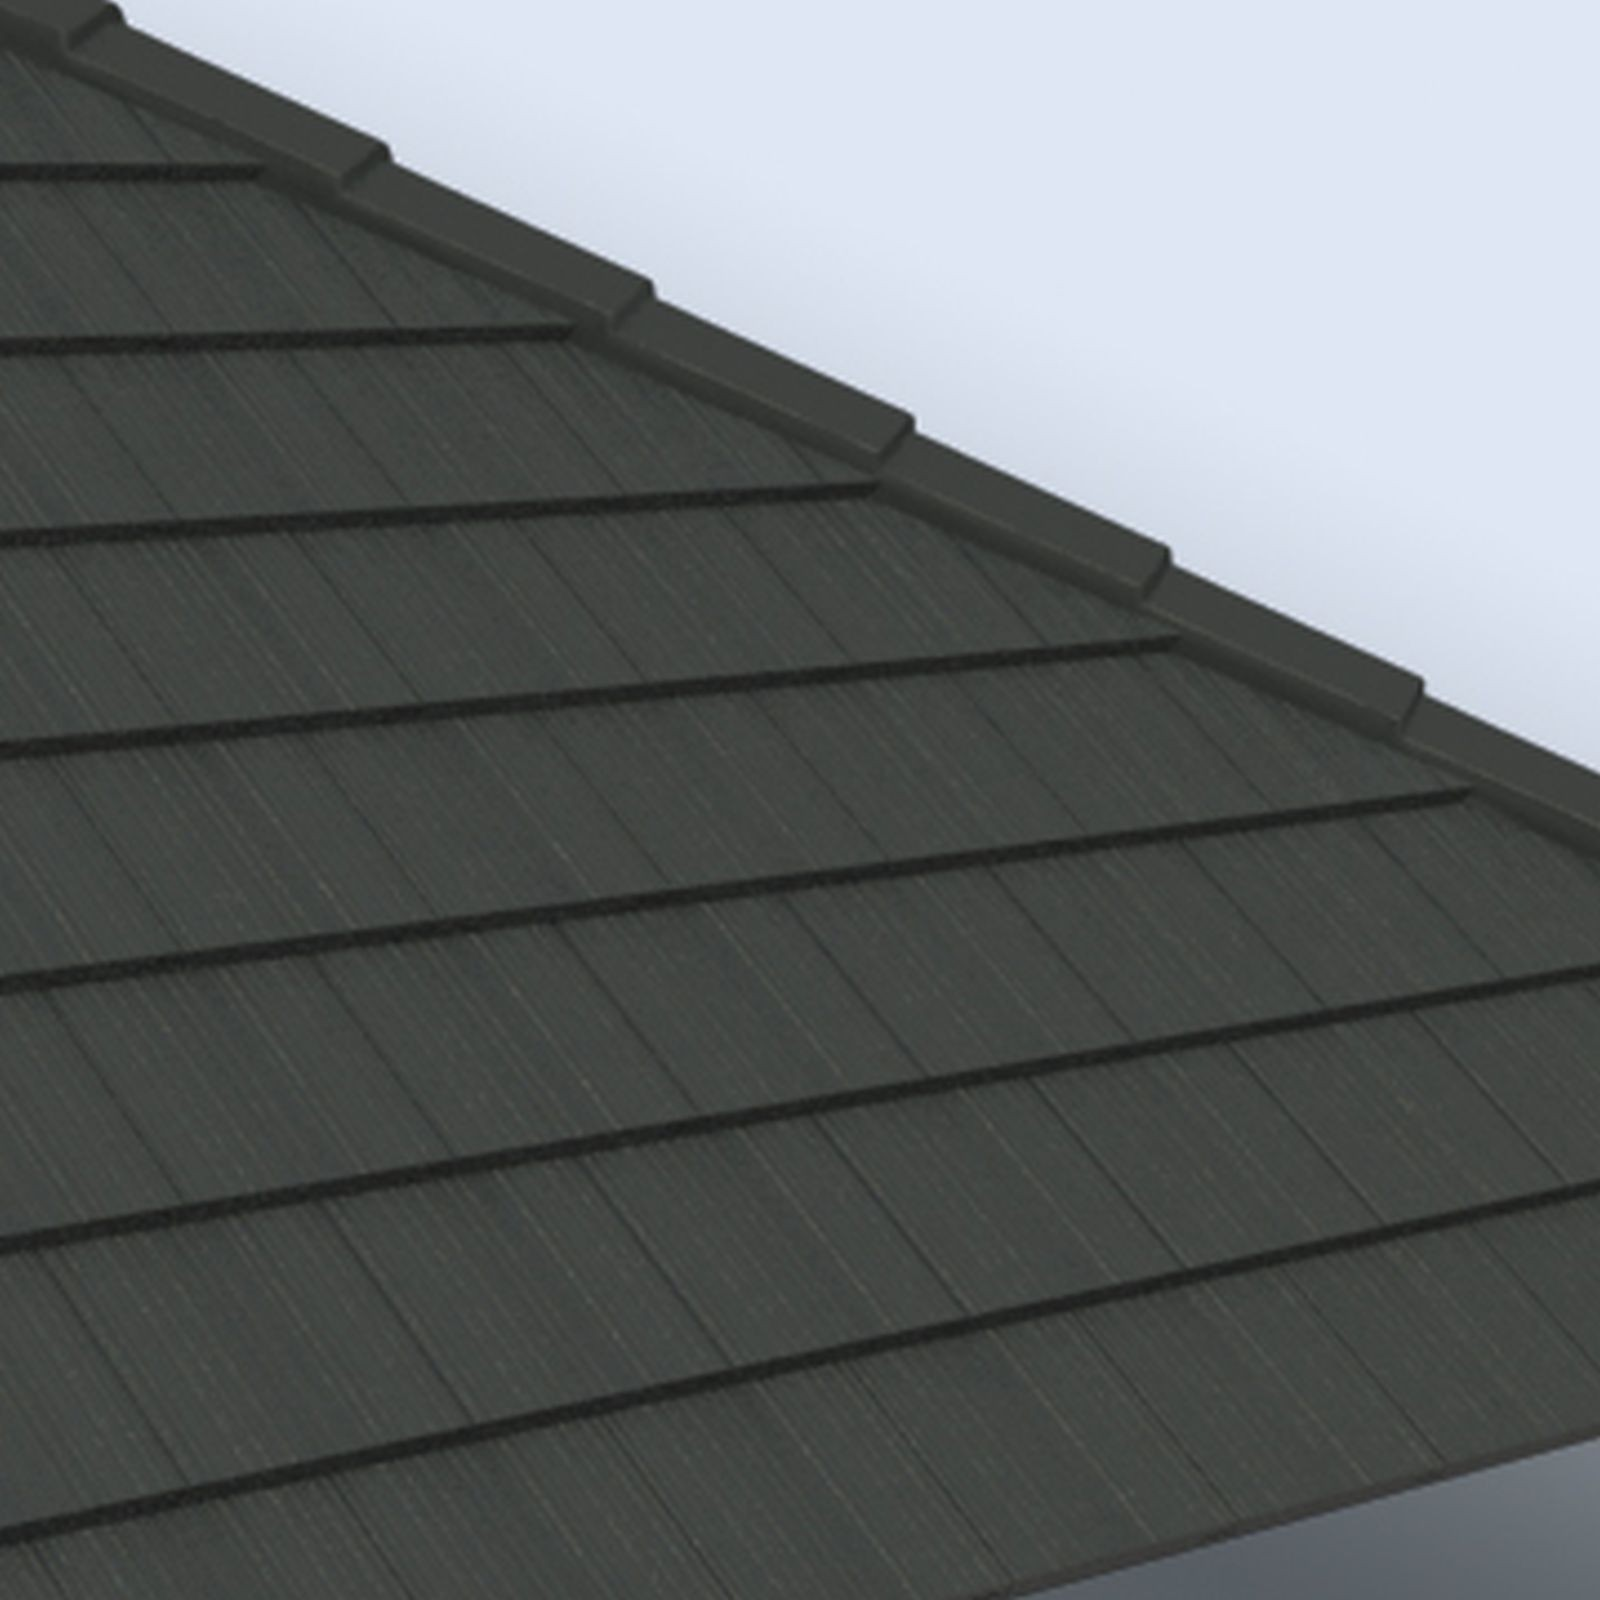 Boral Roofing Design Content